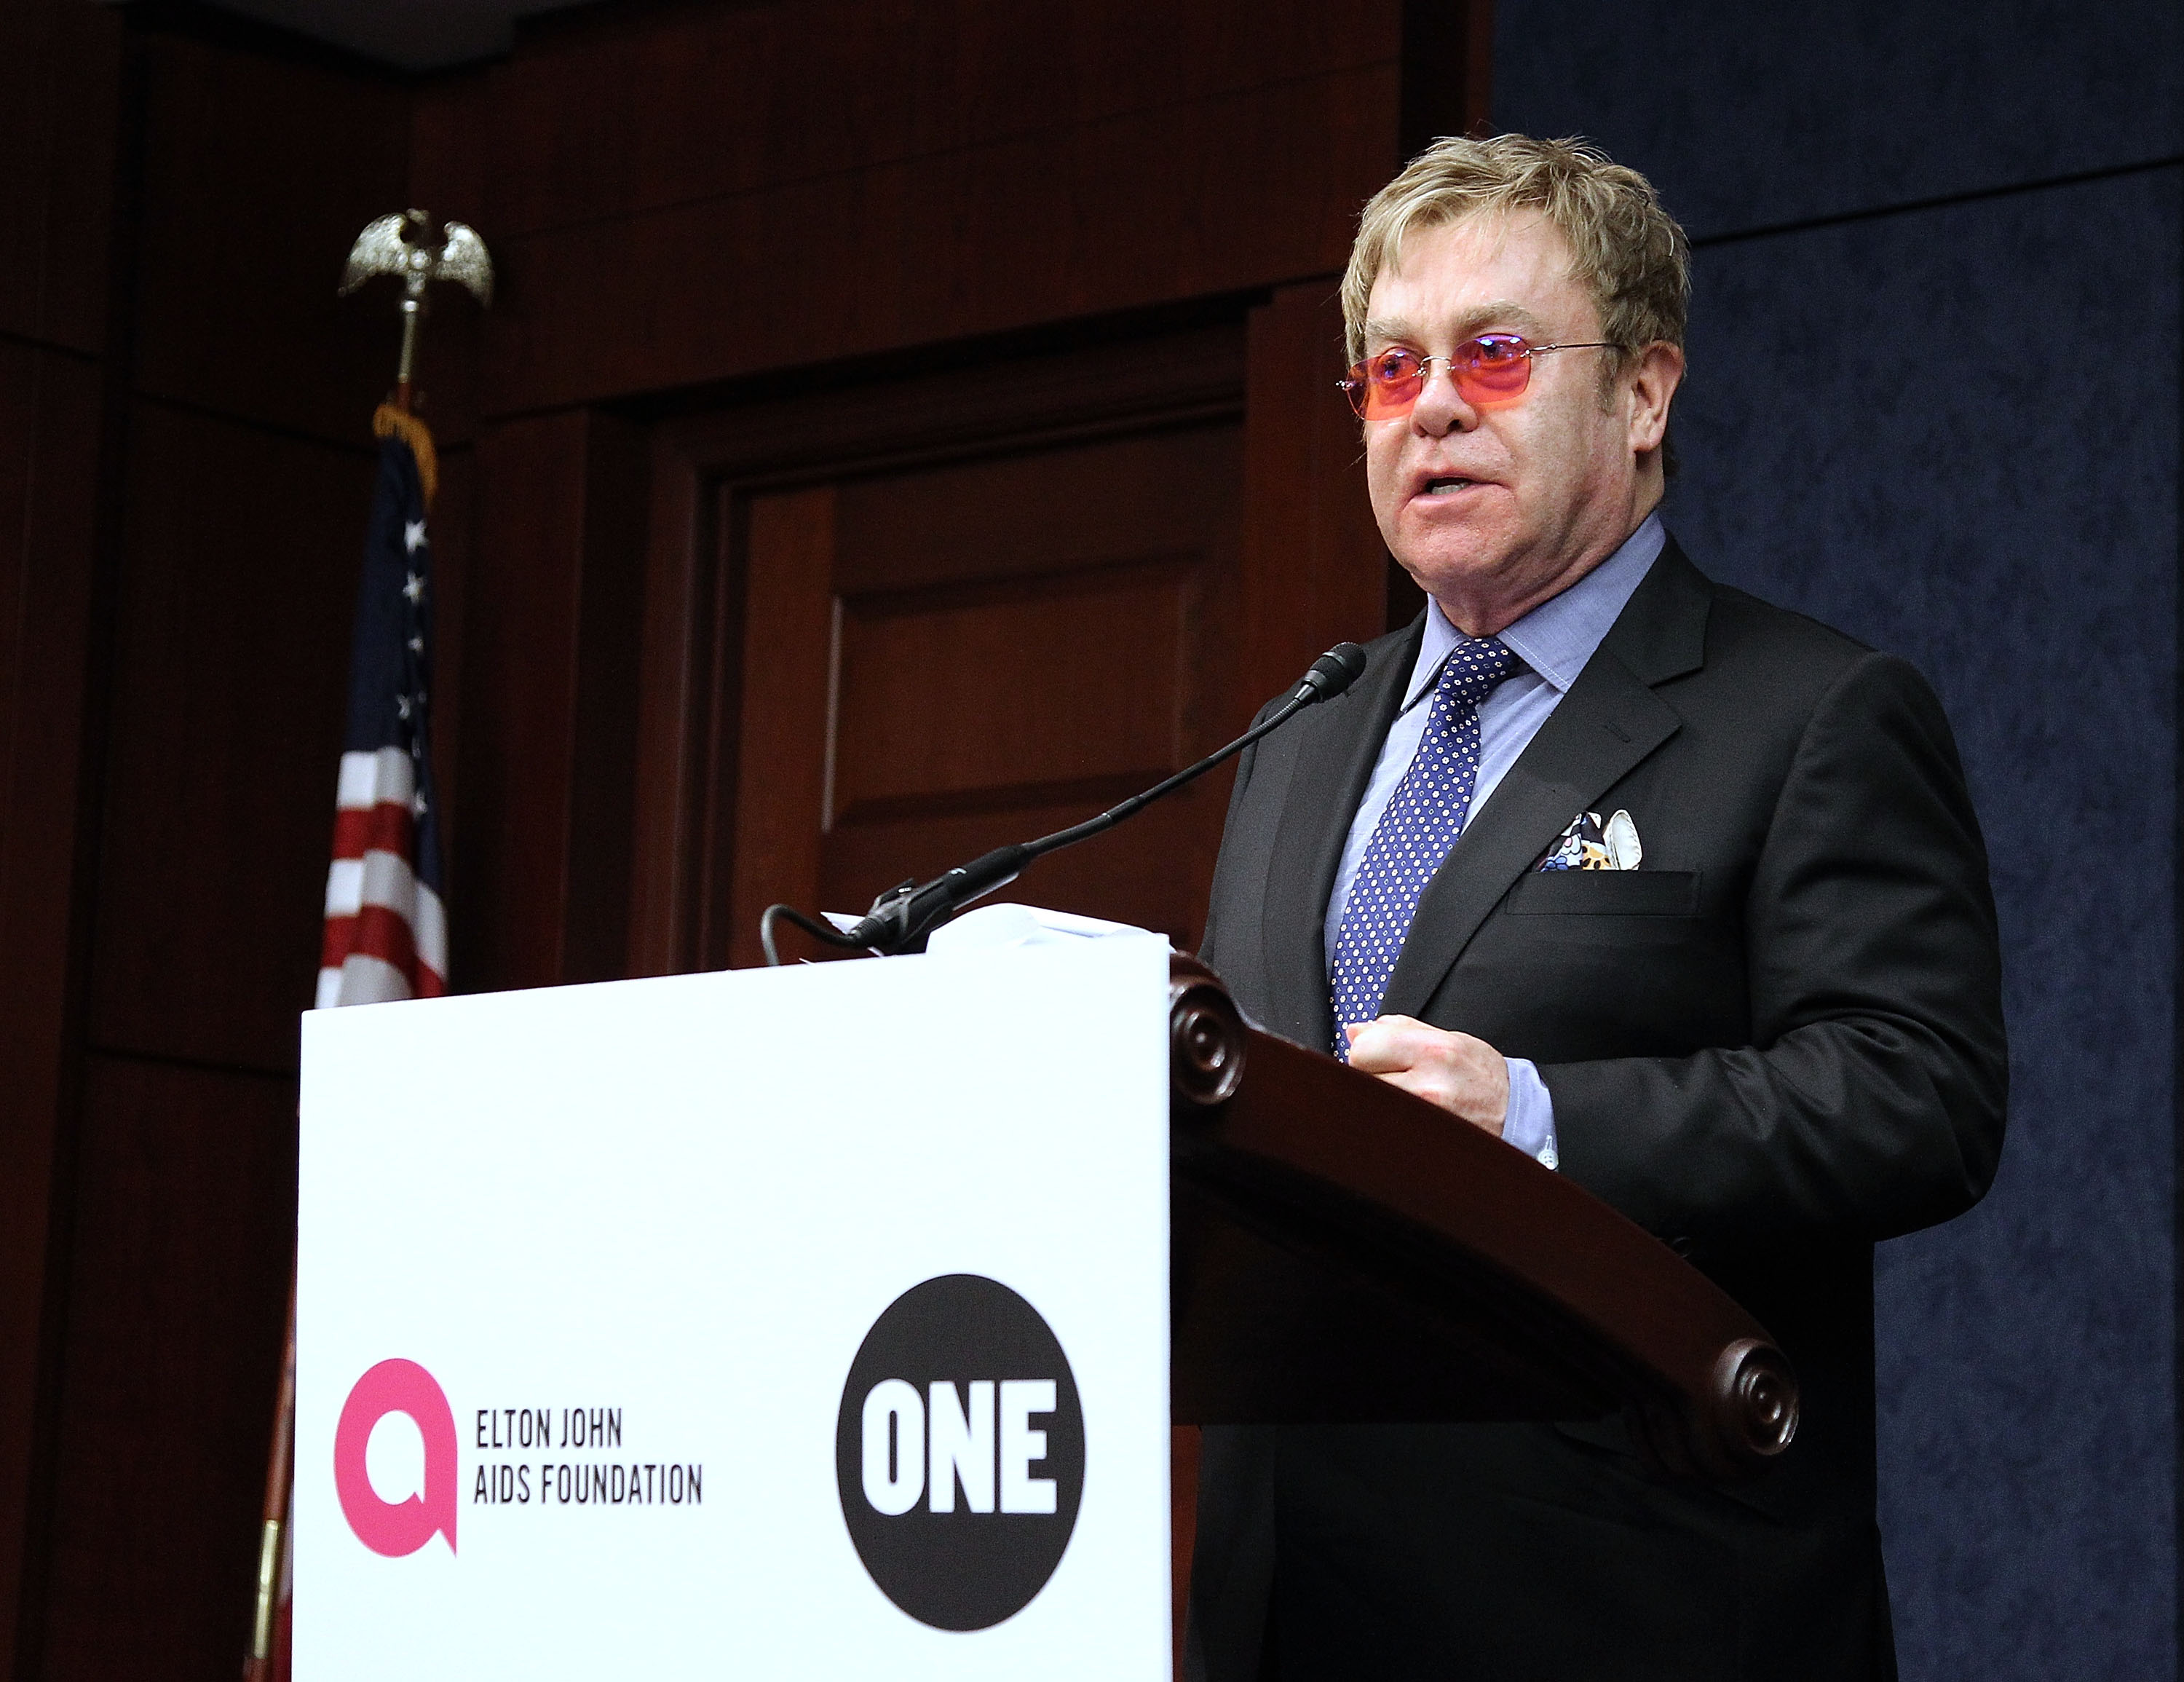 WASHINGTON, DC - MAY 05:  Sir Elton John, Founder, Elton John AIDS Foundation, speaks during an Elton John AIDS Foundation and The ONE Campaign hosted reception on global HIV/AIDS funding at the U.S. Capitol Visitor Center on May 5, 2015 in Washington, DC.  (Photo by Paul Morigi/Getty Images for EJAF) *** Local Caption *** Elton John